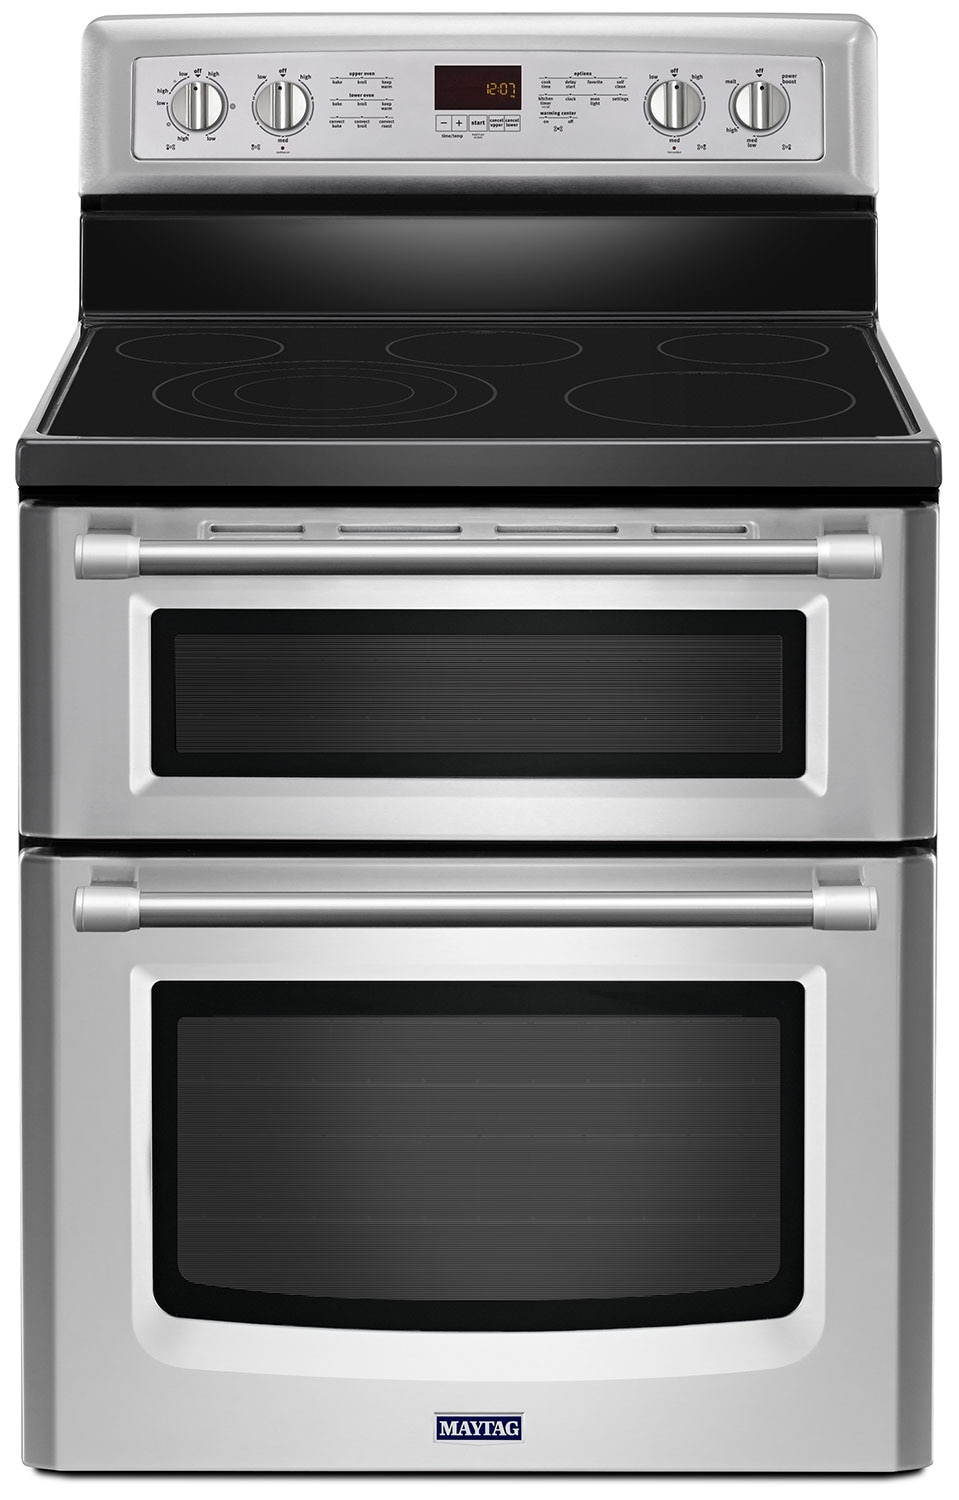 [Maytag Stainless Steel Freestanding Electric Double Range (6.7 Cu. Ft.) - YMET8820DS]